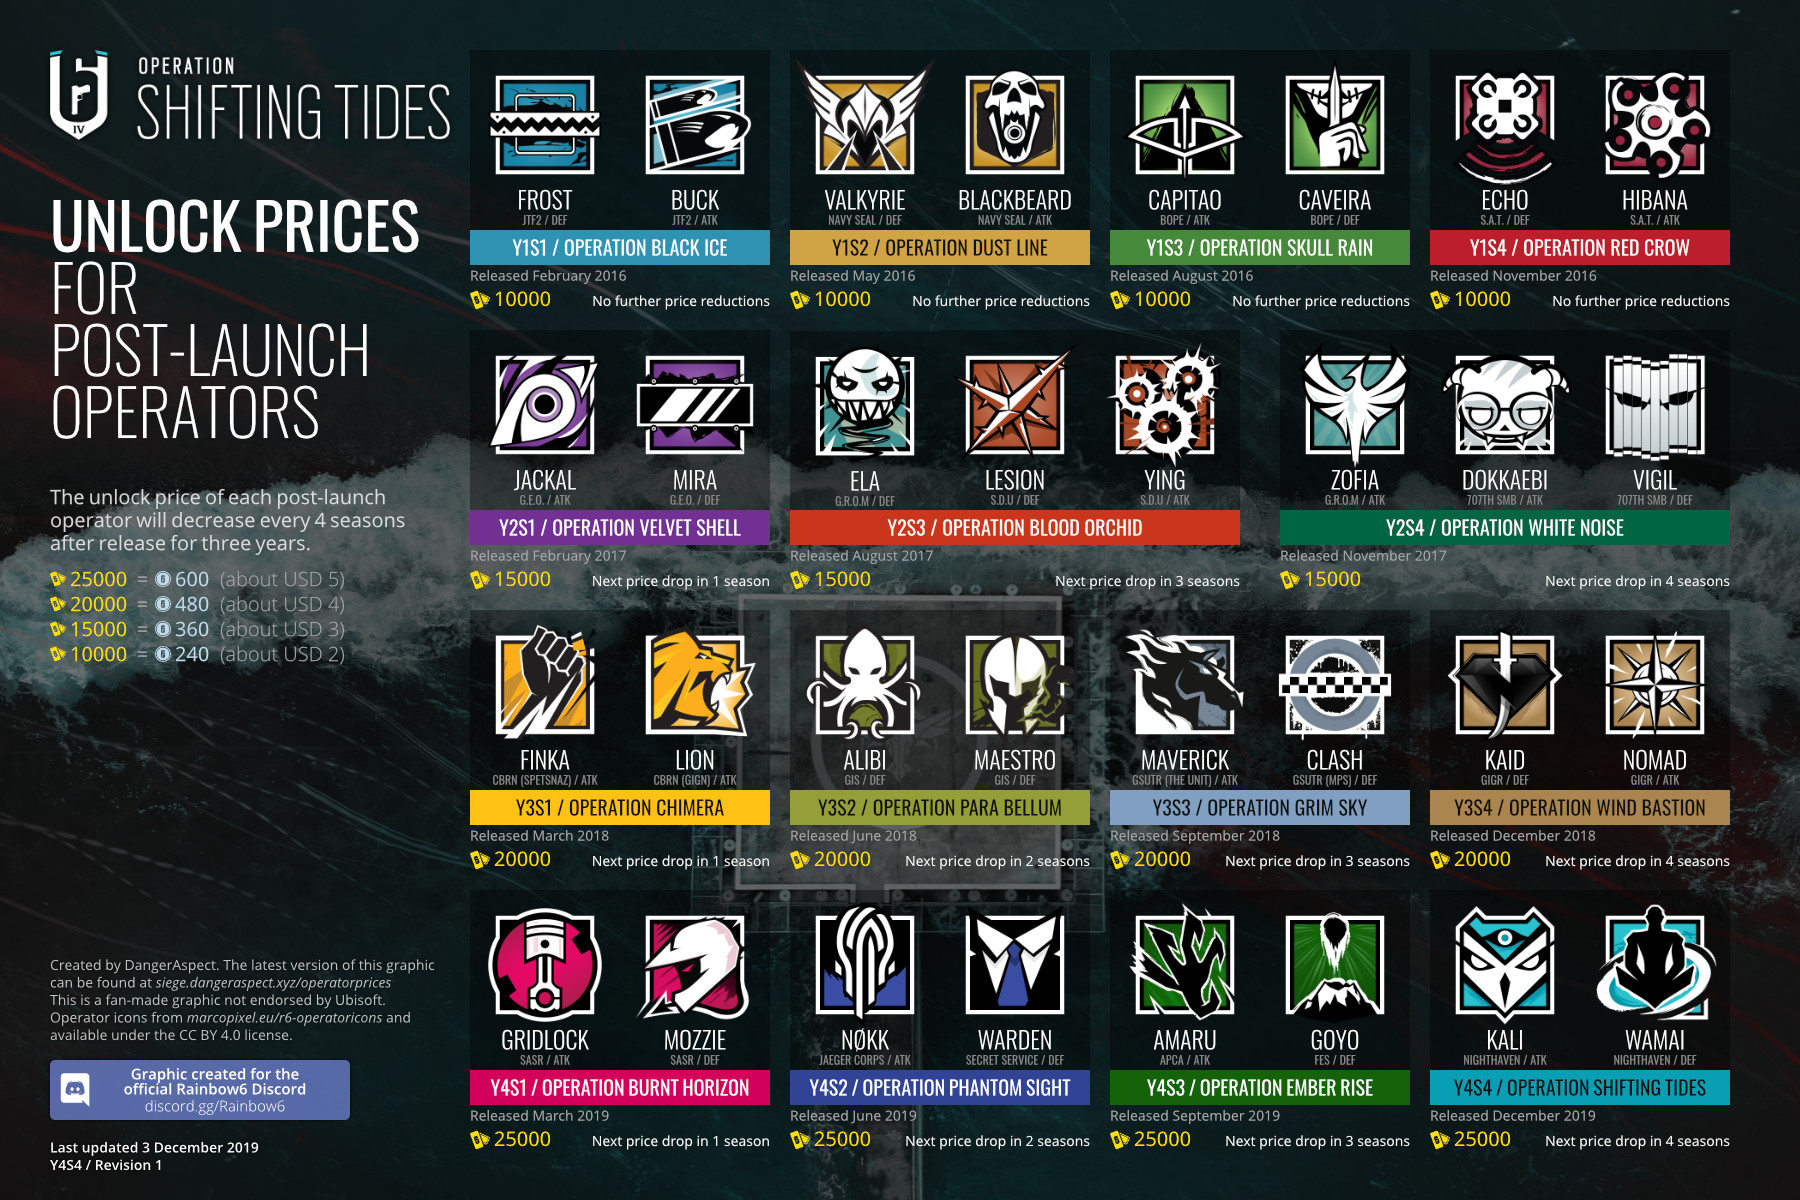 Unlock Prices for Post-Launch Operators